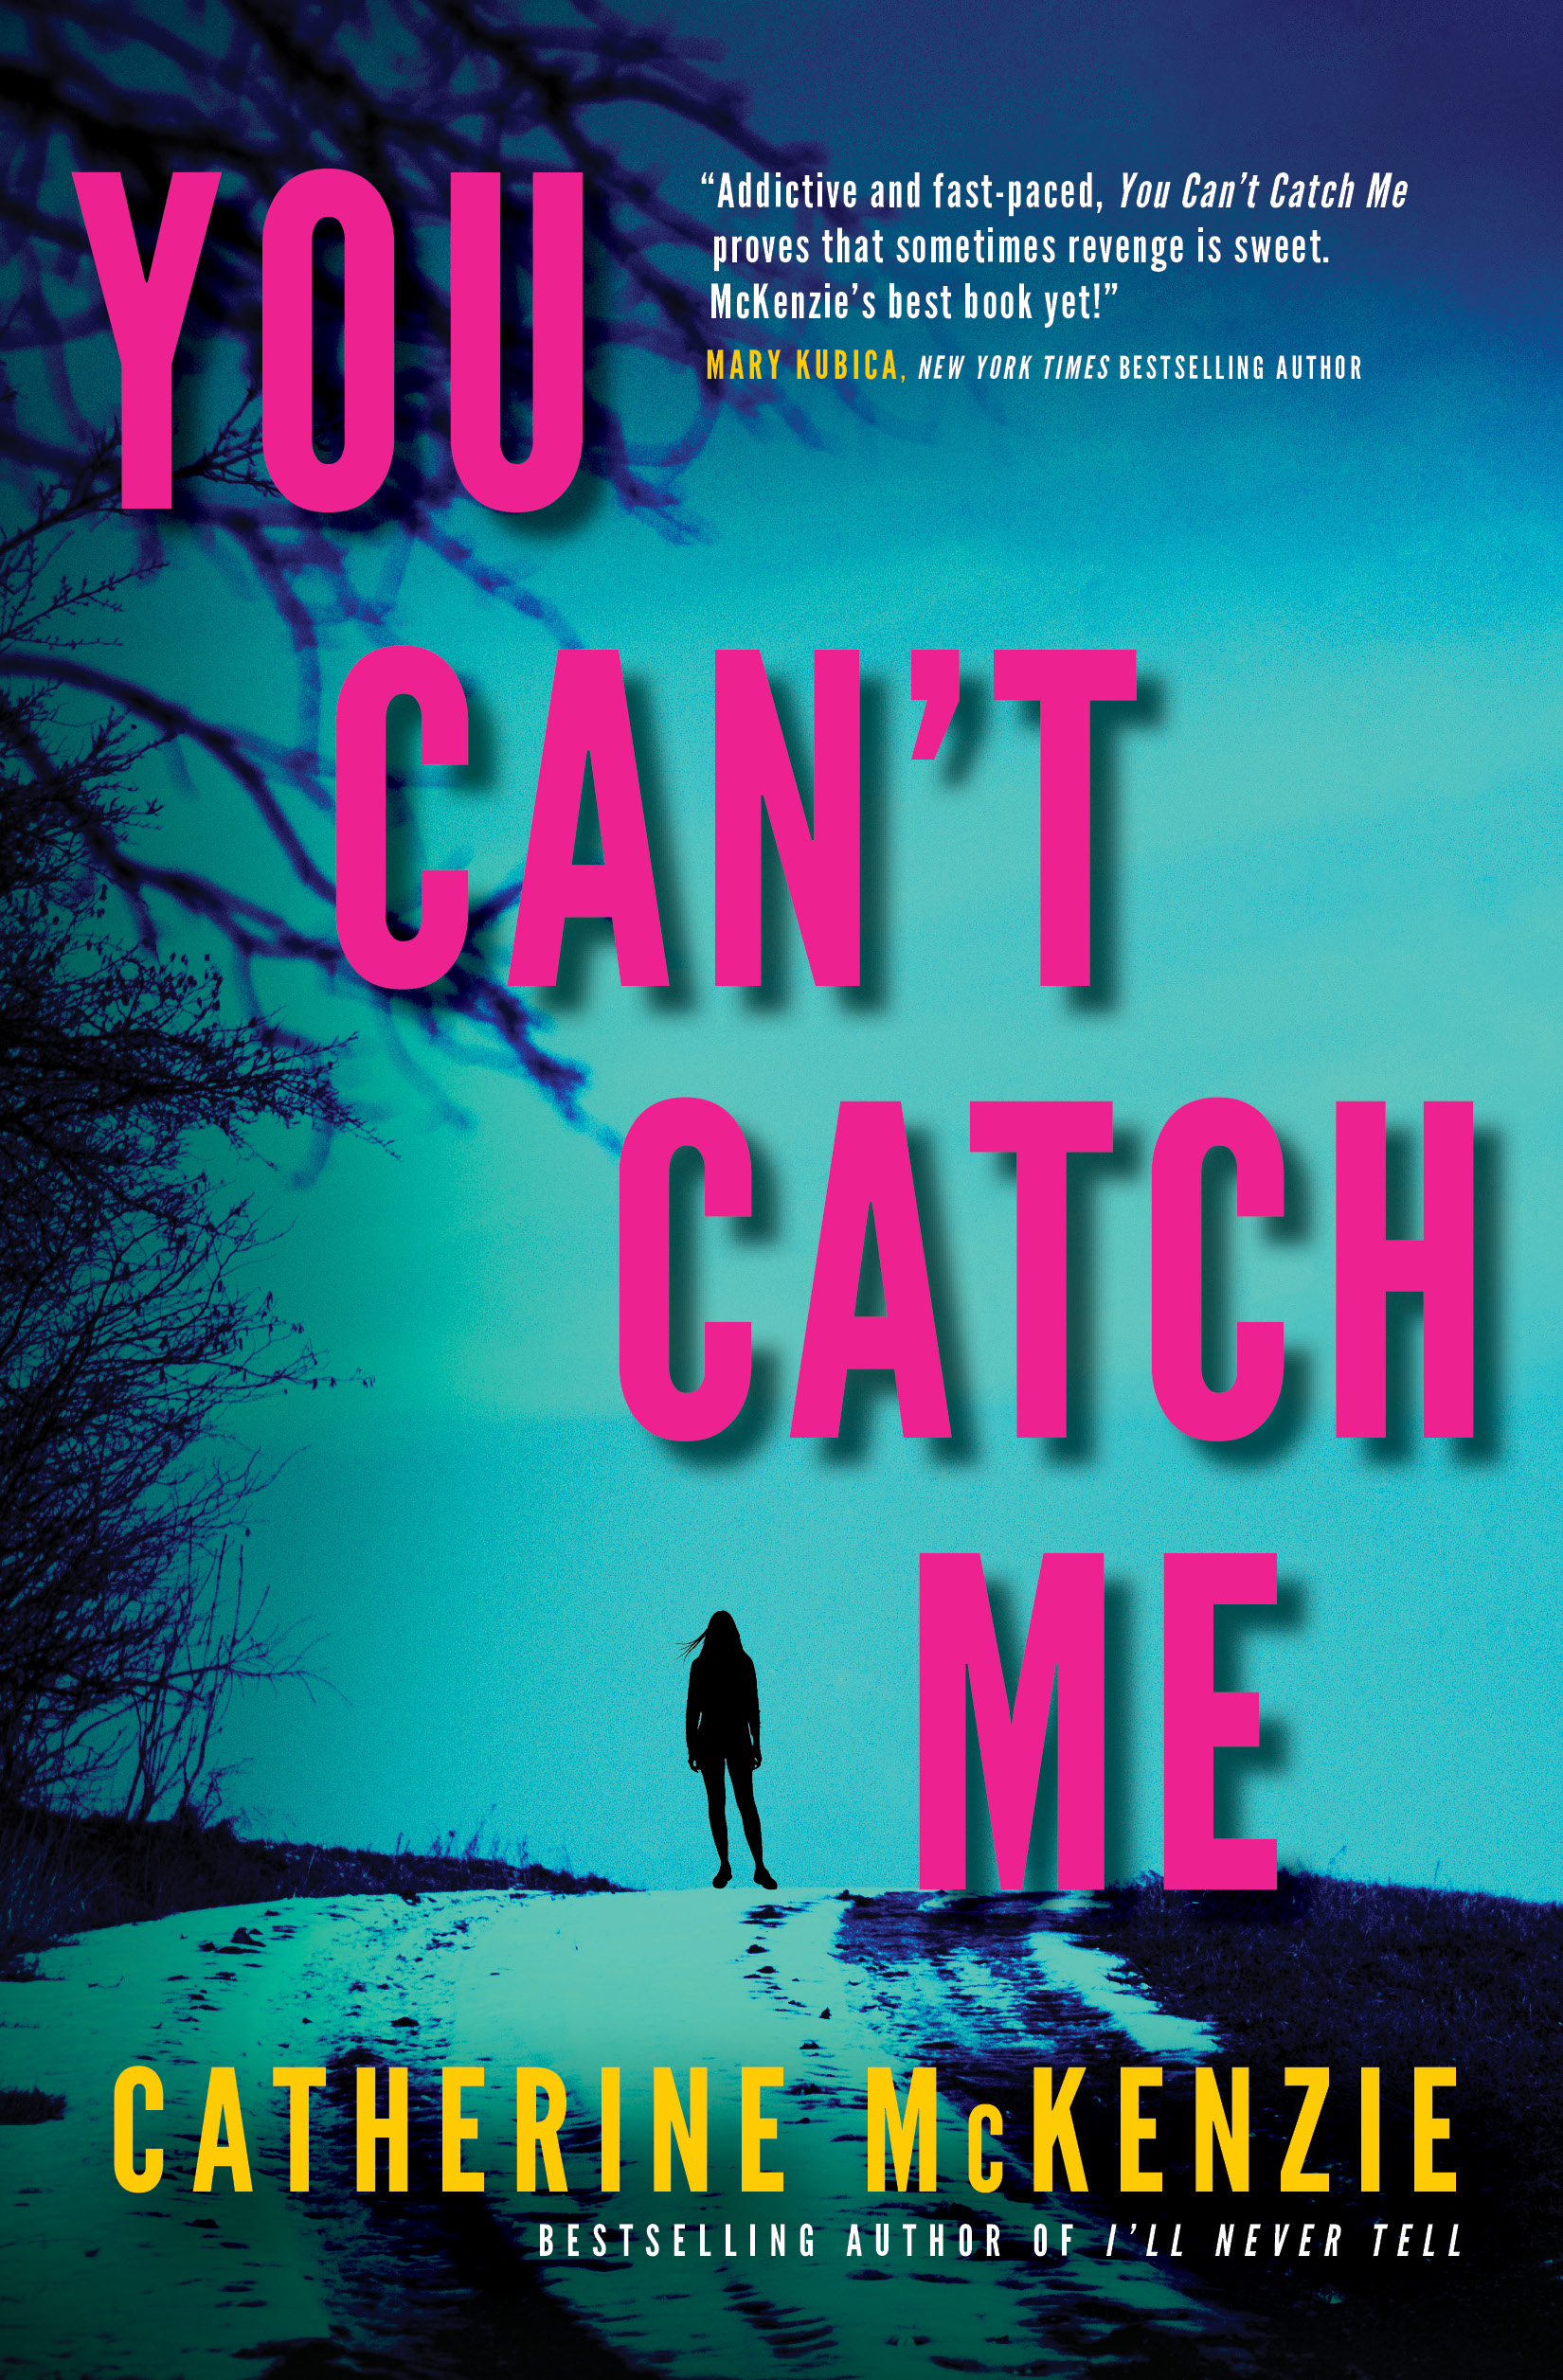 McKenzie, Catherine - You Can't Catch Me - BookCover